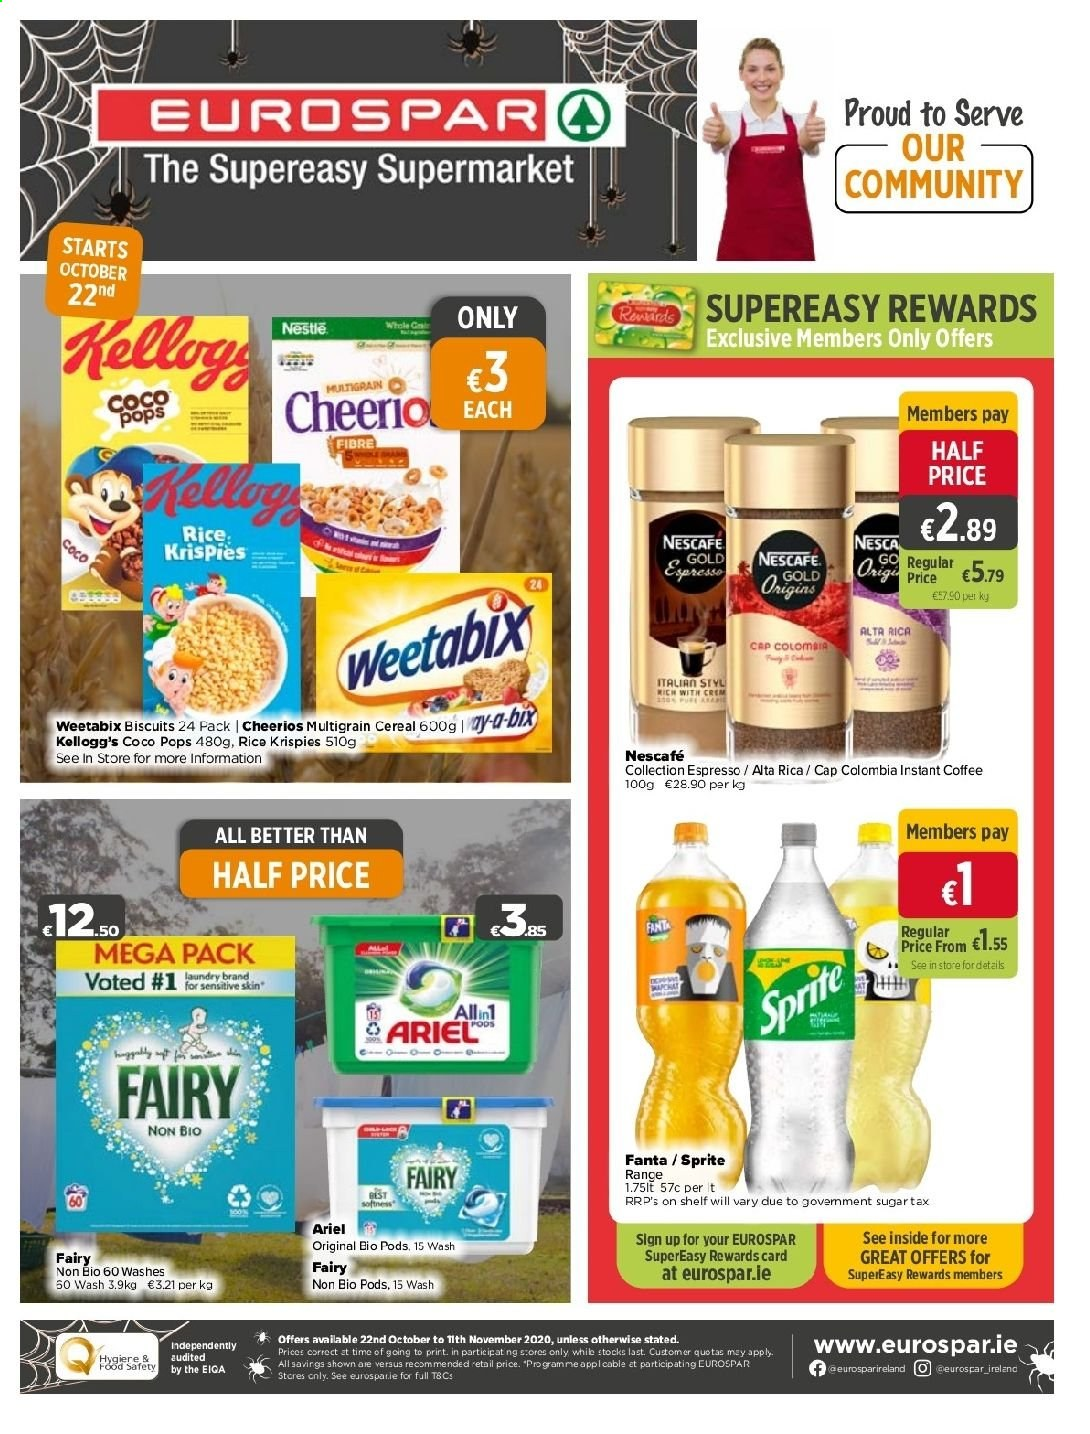 EUROSPAR offer  - 22.10.2020 - 11.11.2020 - Sales products - biscuits, cap, cereals, nestlé, rice, sprite, instant coffee, cheerios, fanta, cereal, ariel, coco pops, card, nescafé. Page 1.